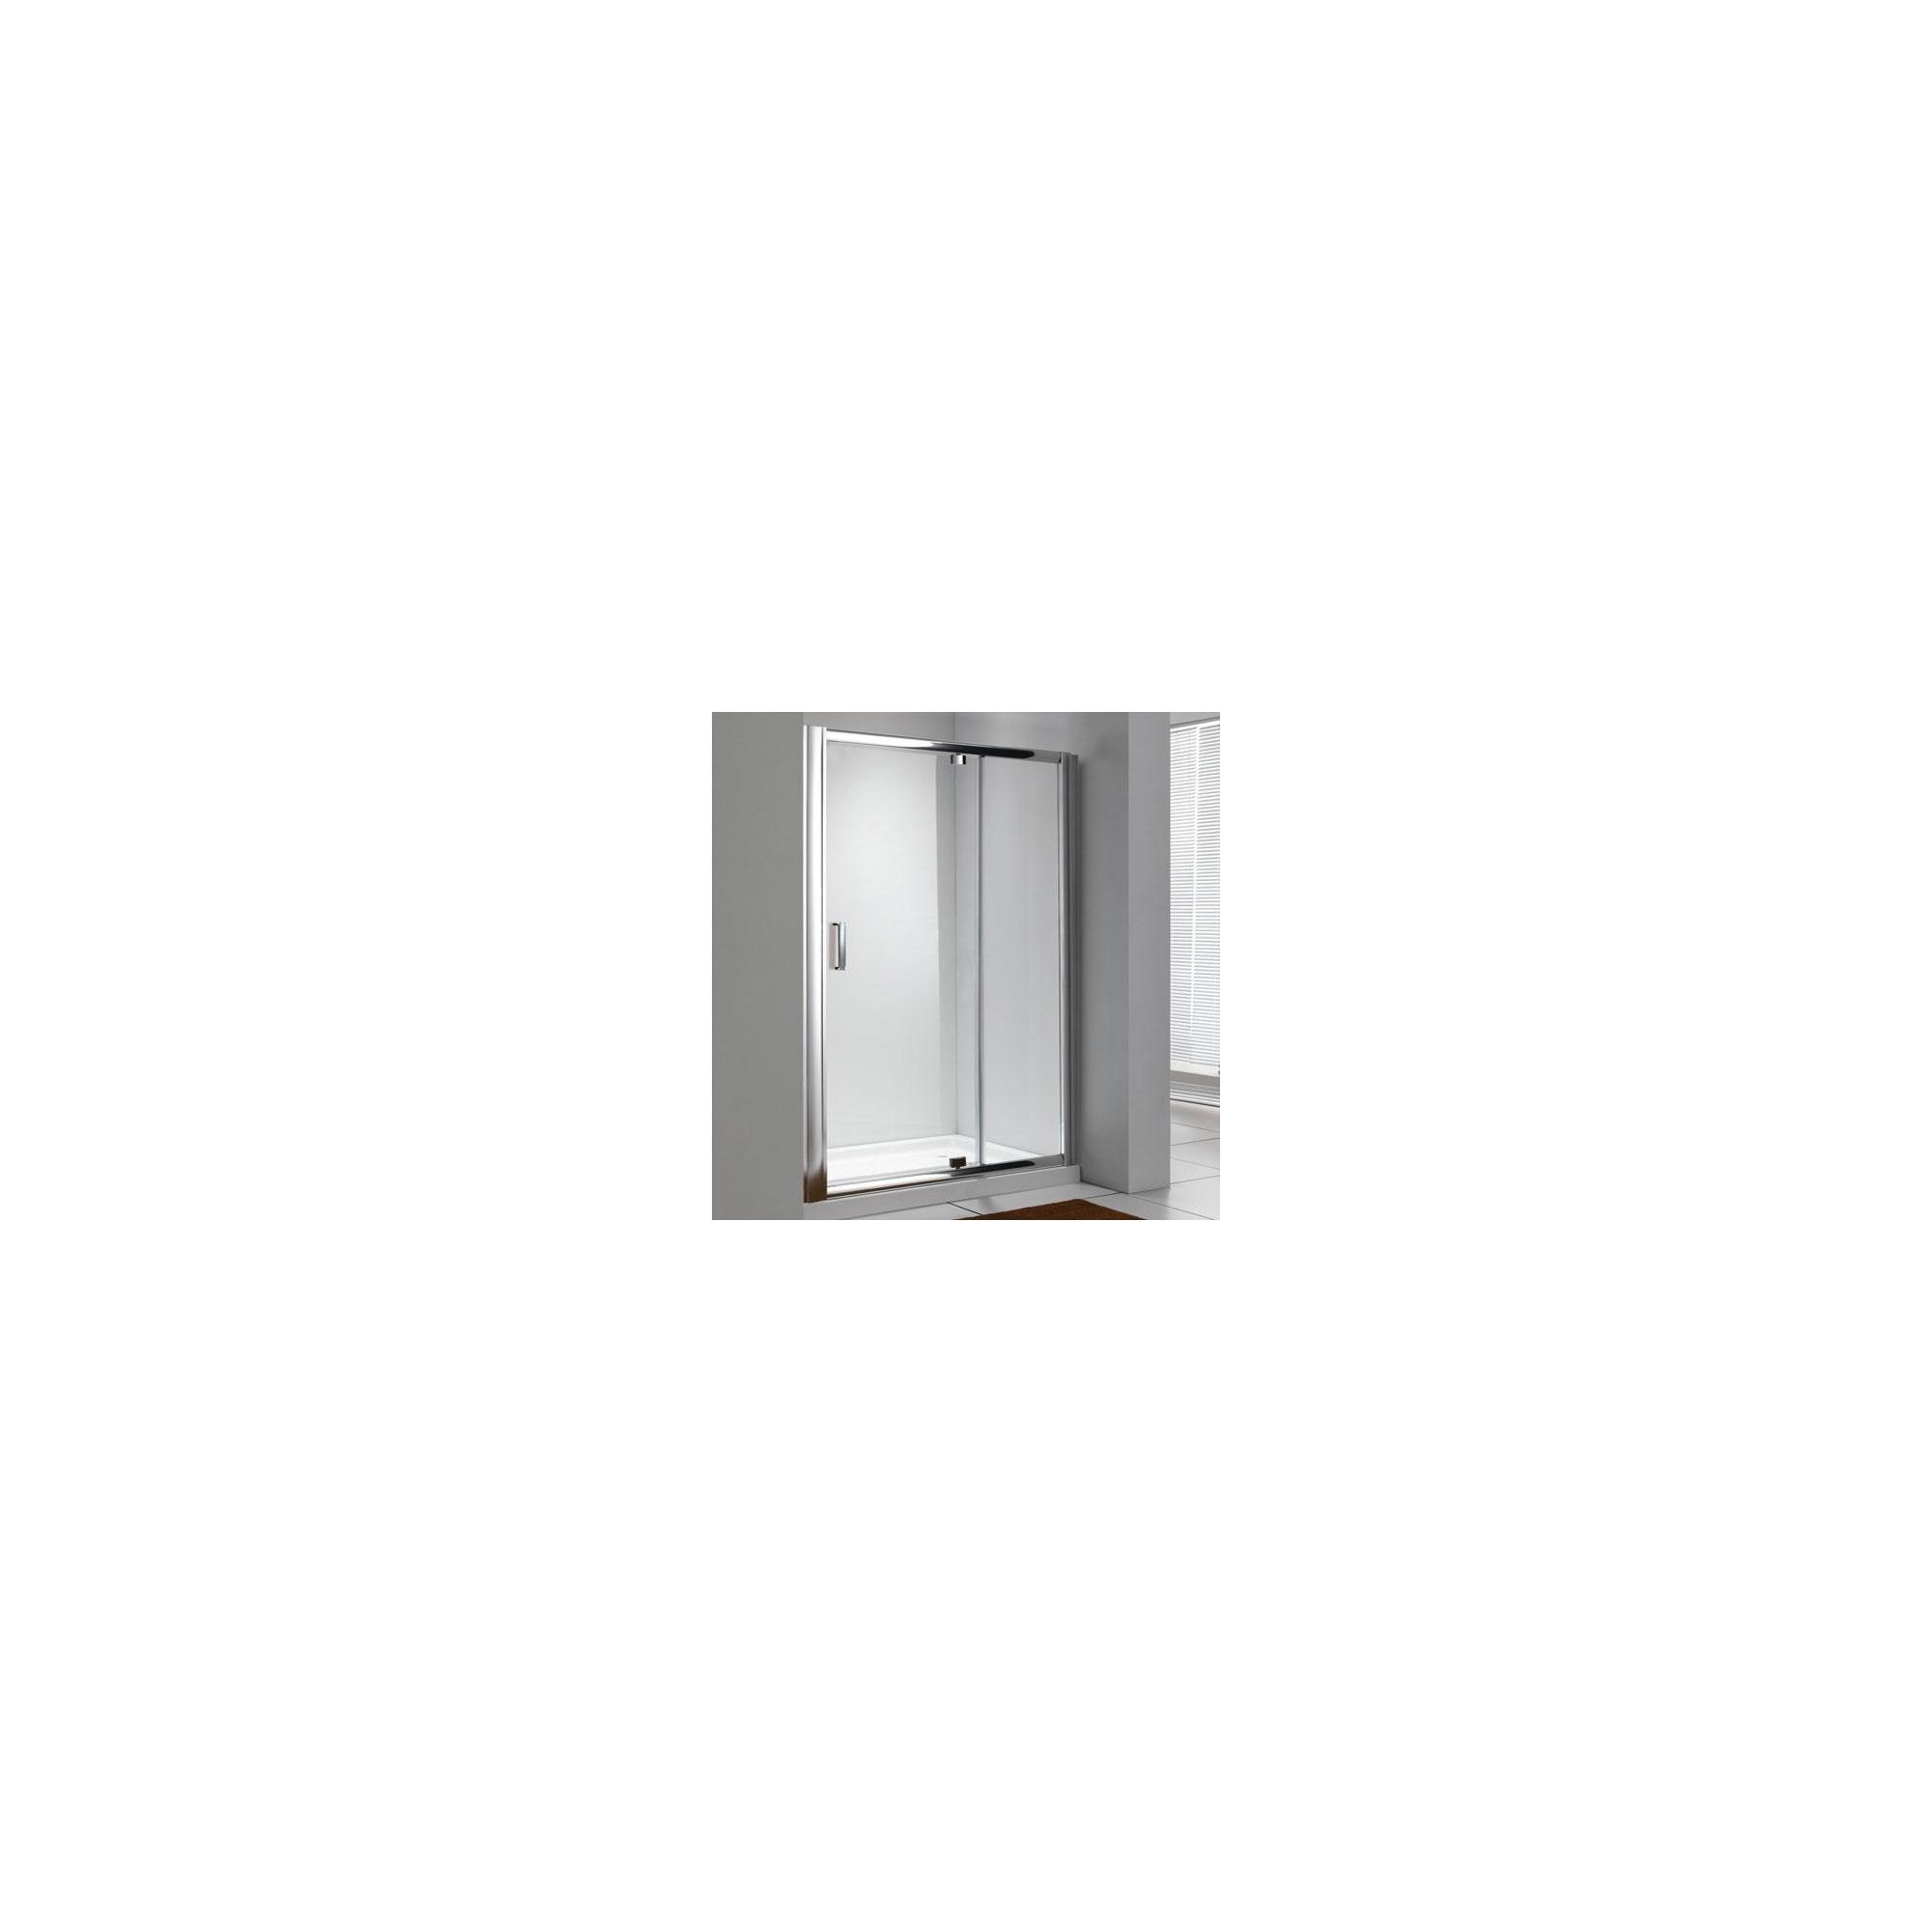 Duchy Style Pivot Door Shower Enclosure, 900mm x 900mm, 6mm Glass, Low Profile Tray at Tesco Direct